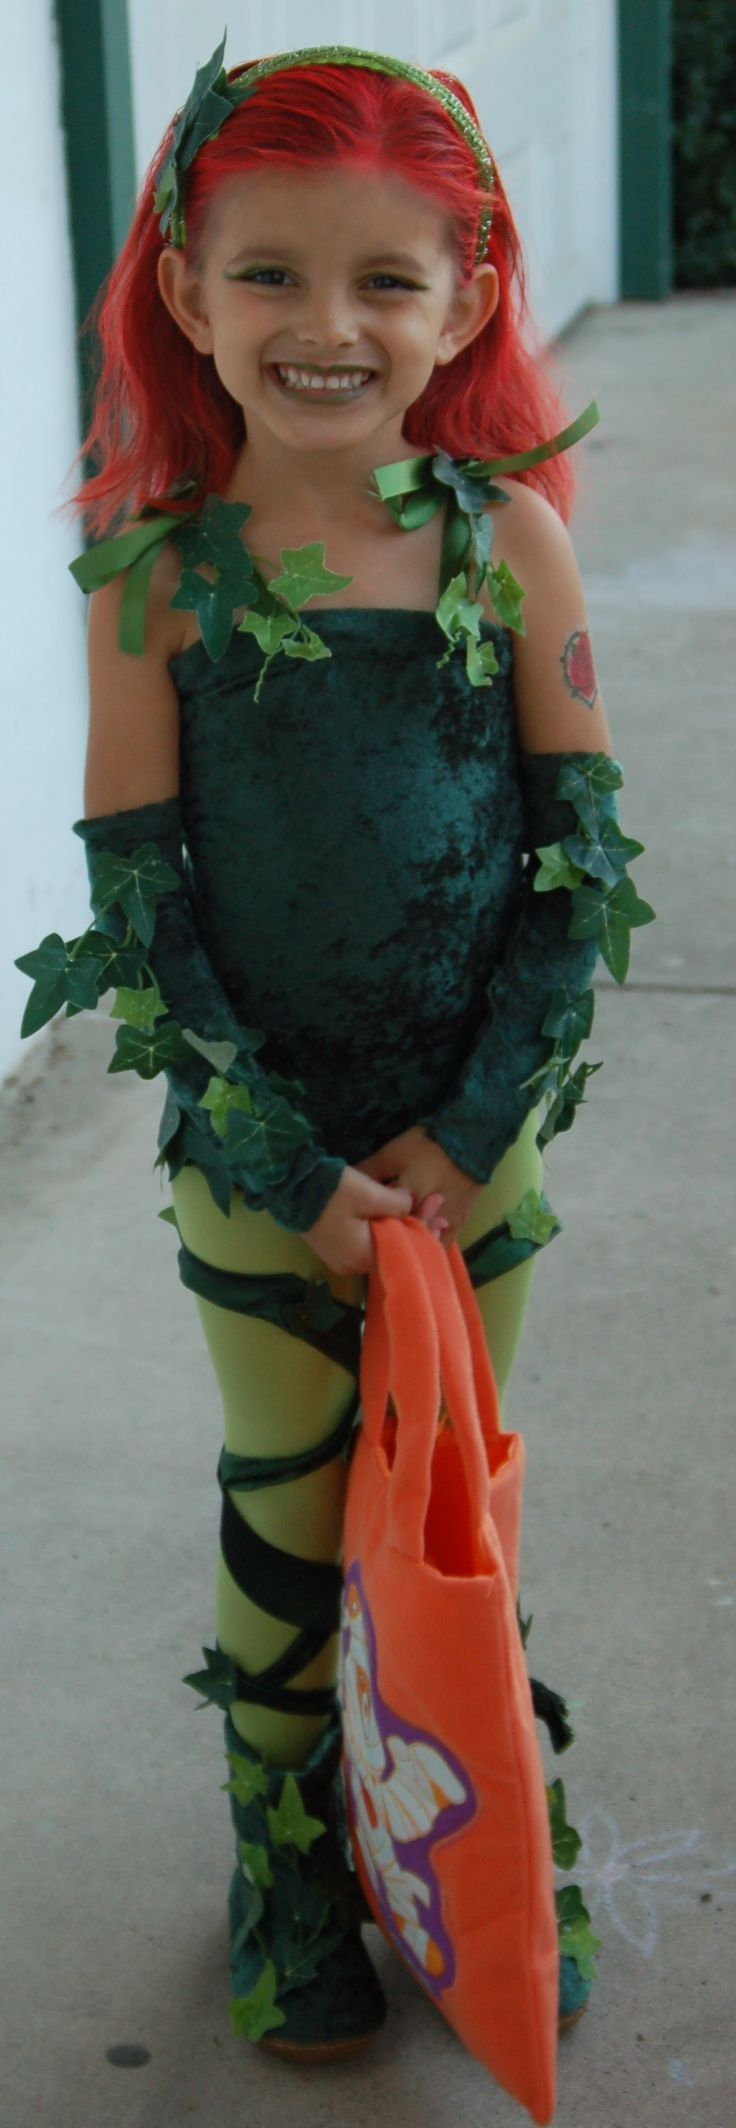 Poison Ivy CostumePoison Ivy Costume Kids, Poison Ivy Costumes Girls ...